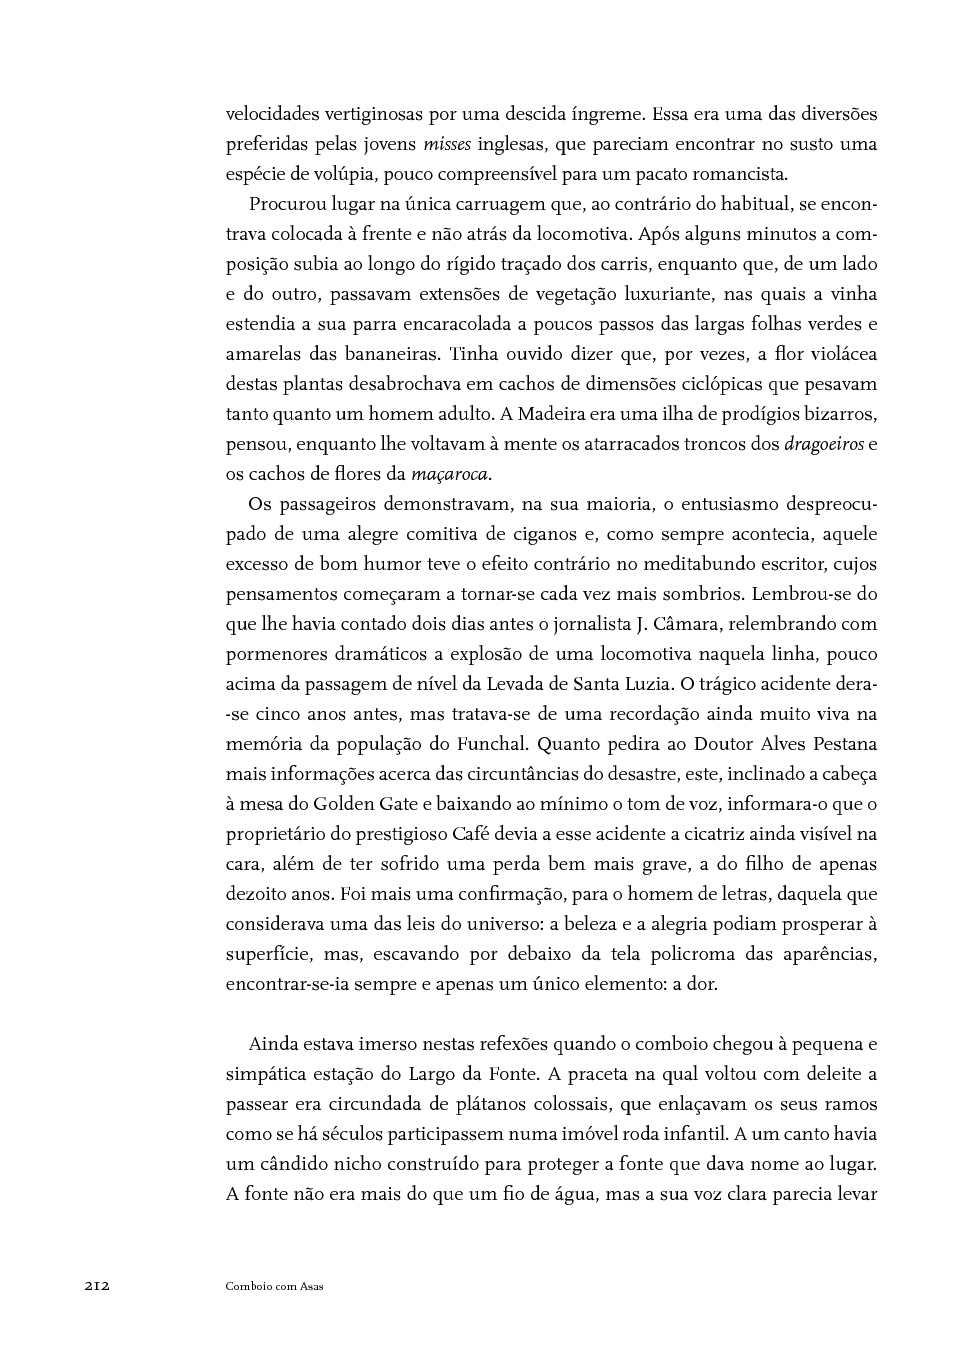 Page 215